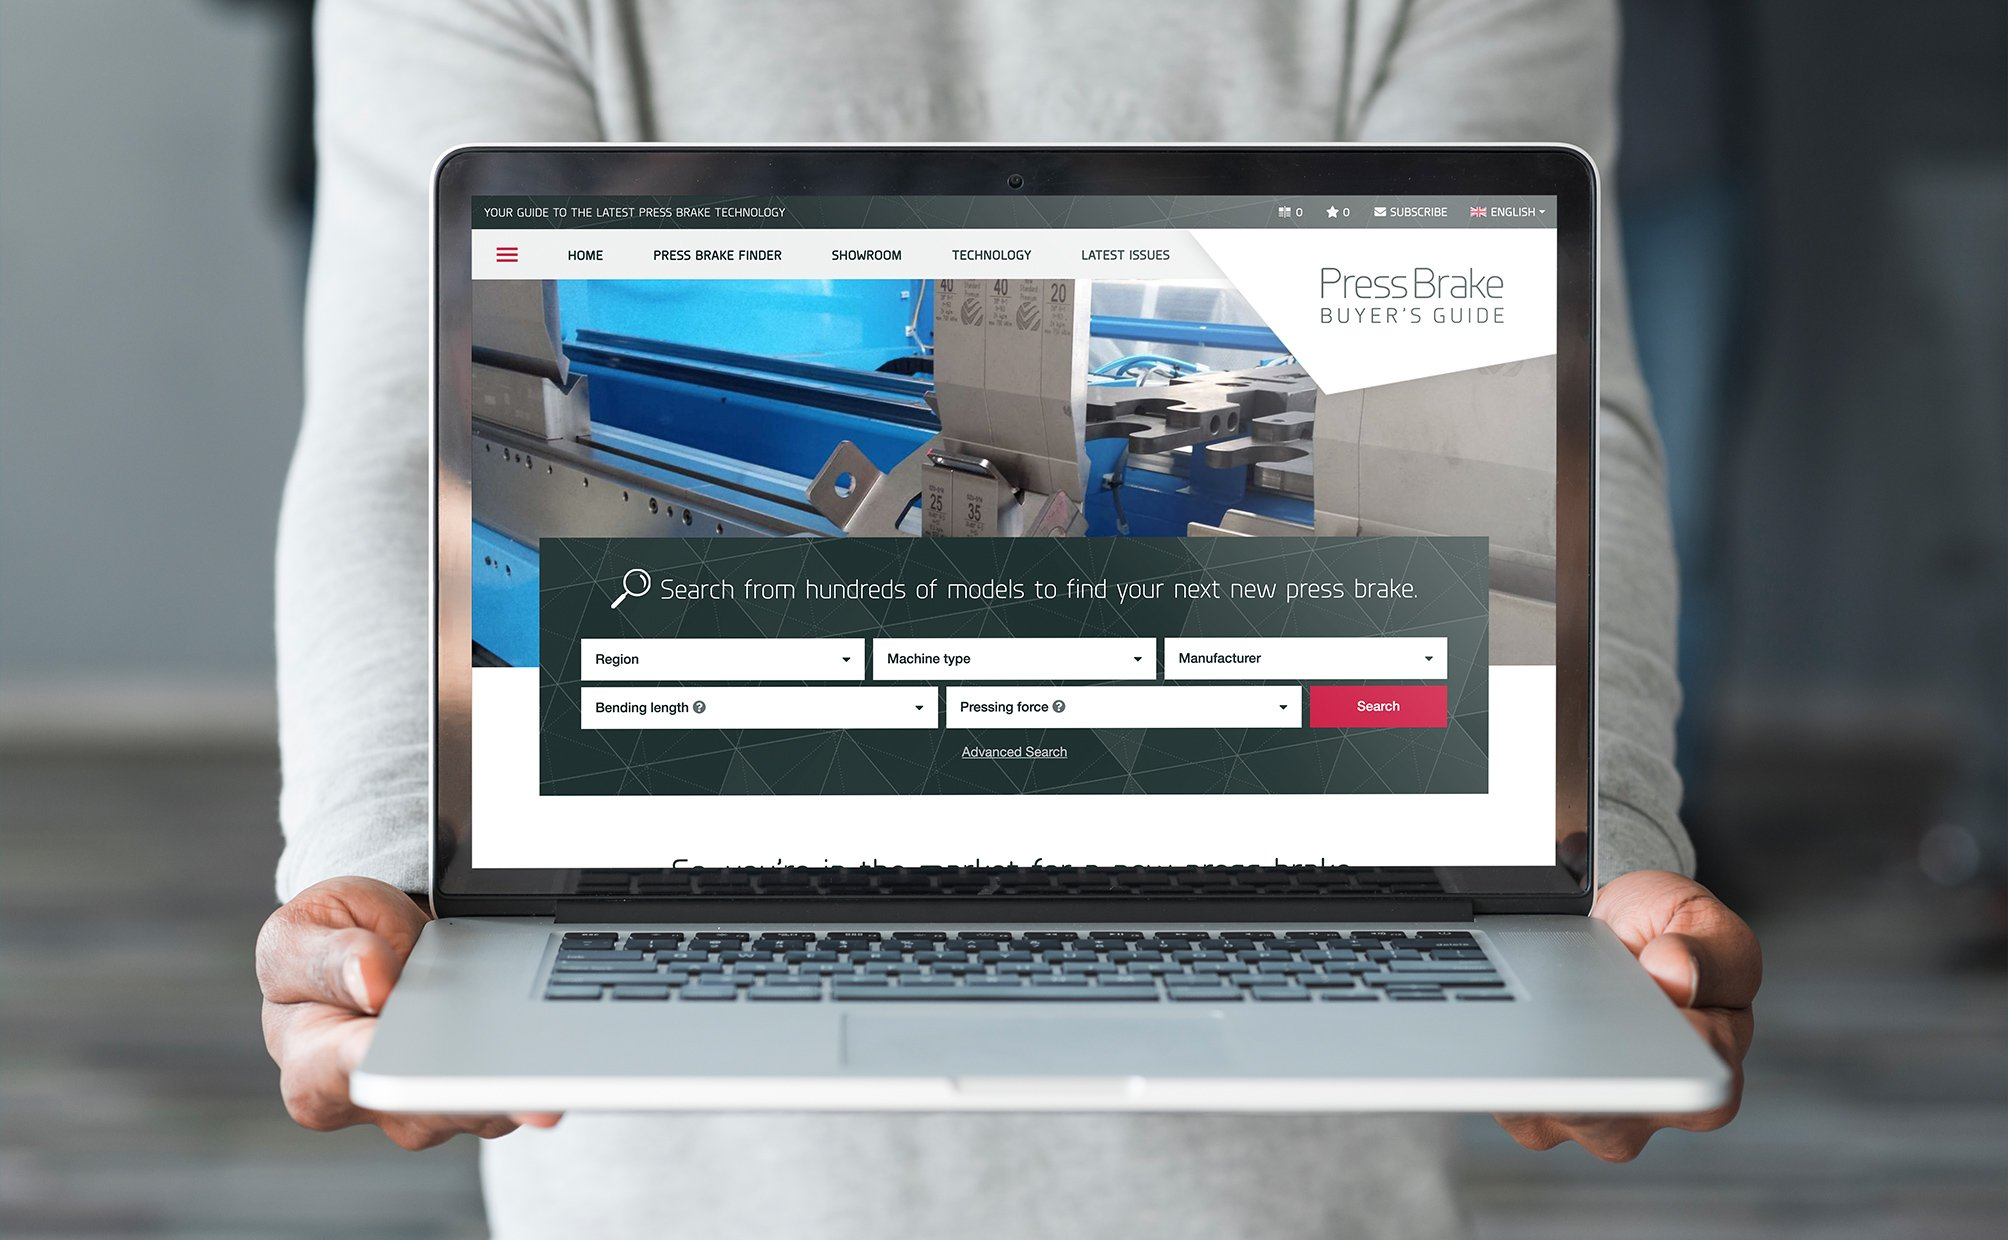 The Press Brake Buyer's Guide homepage